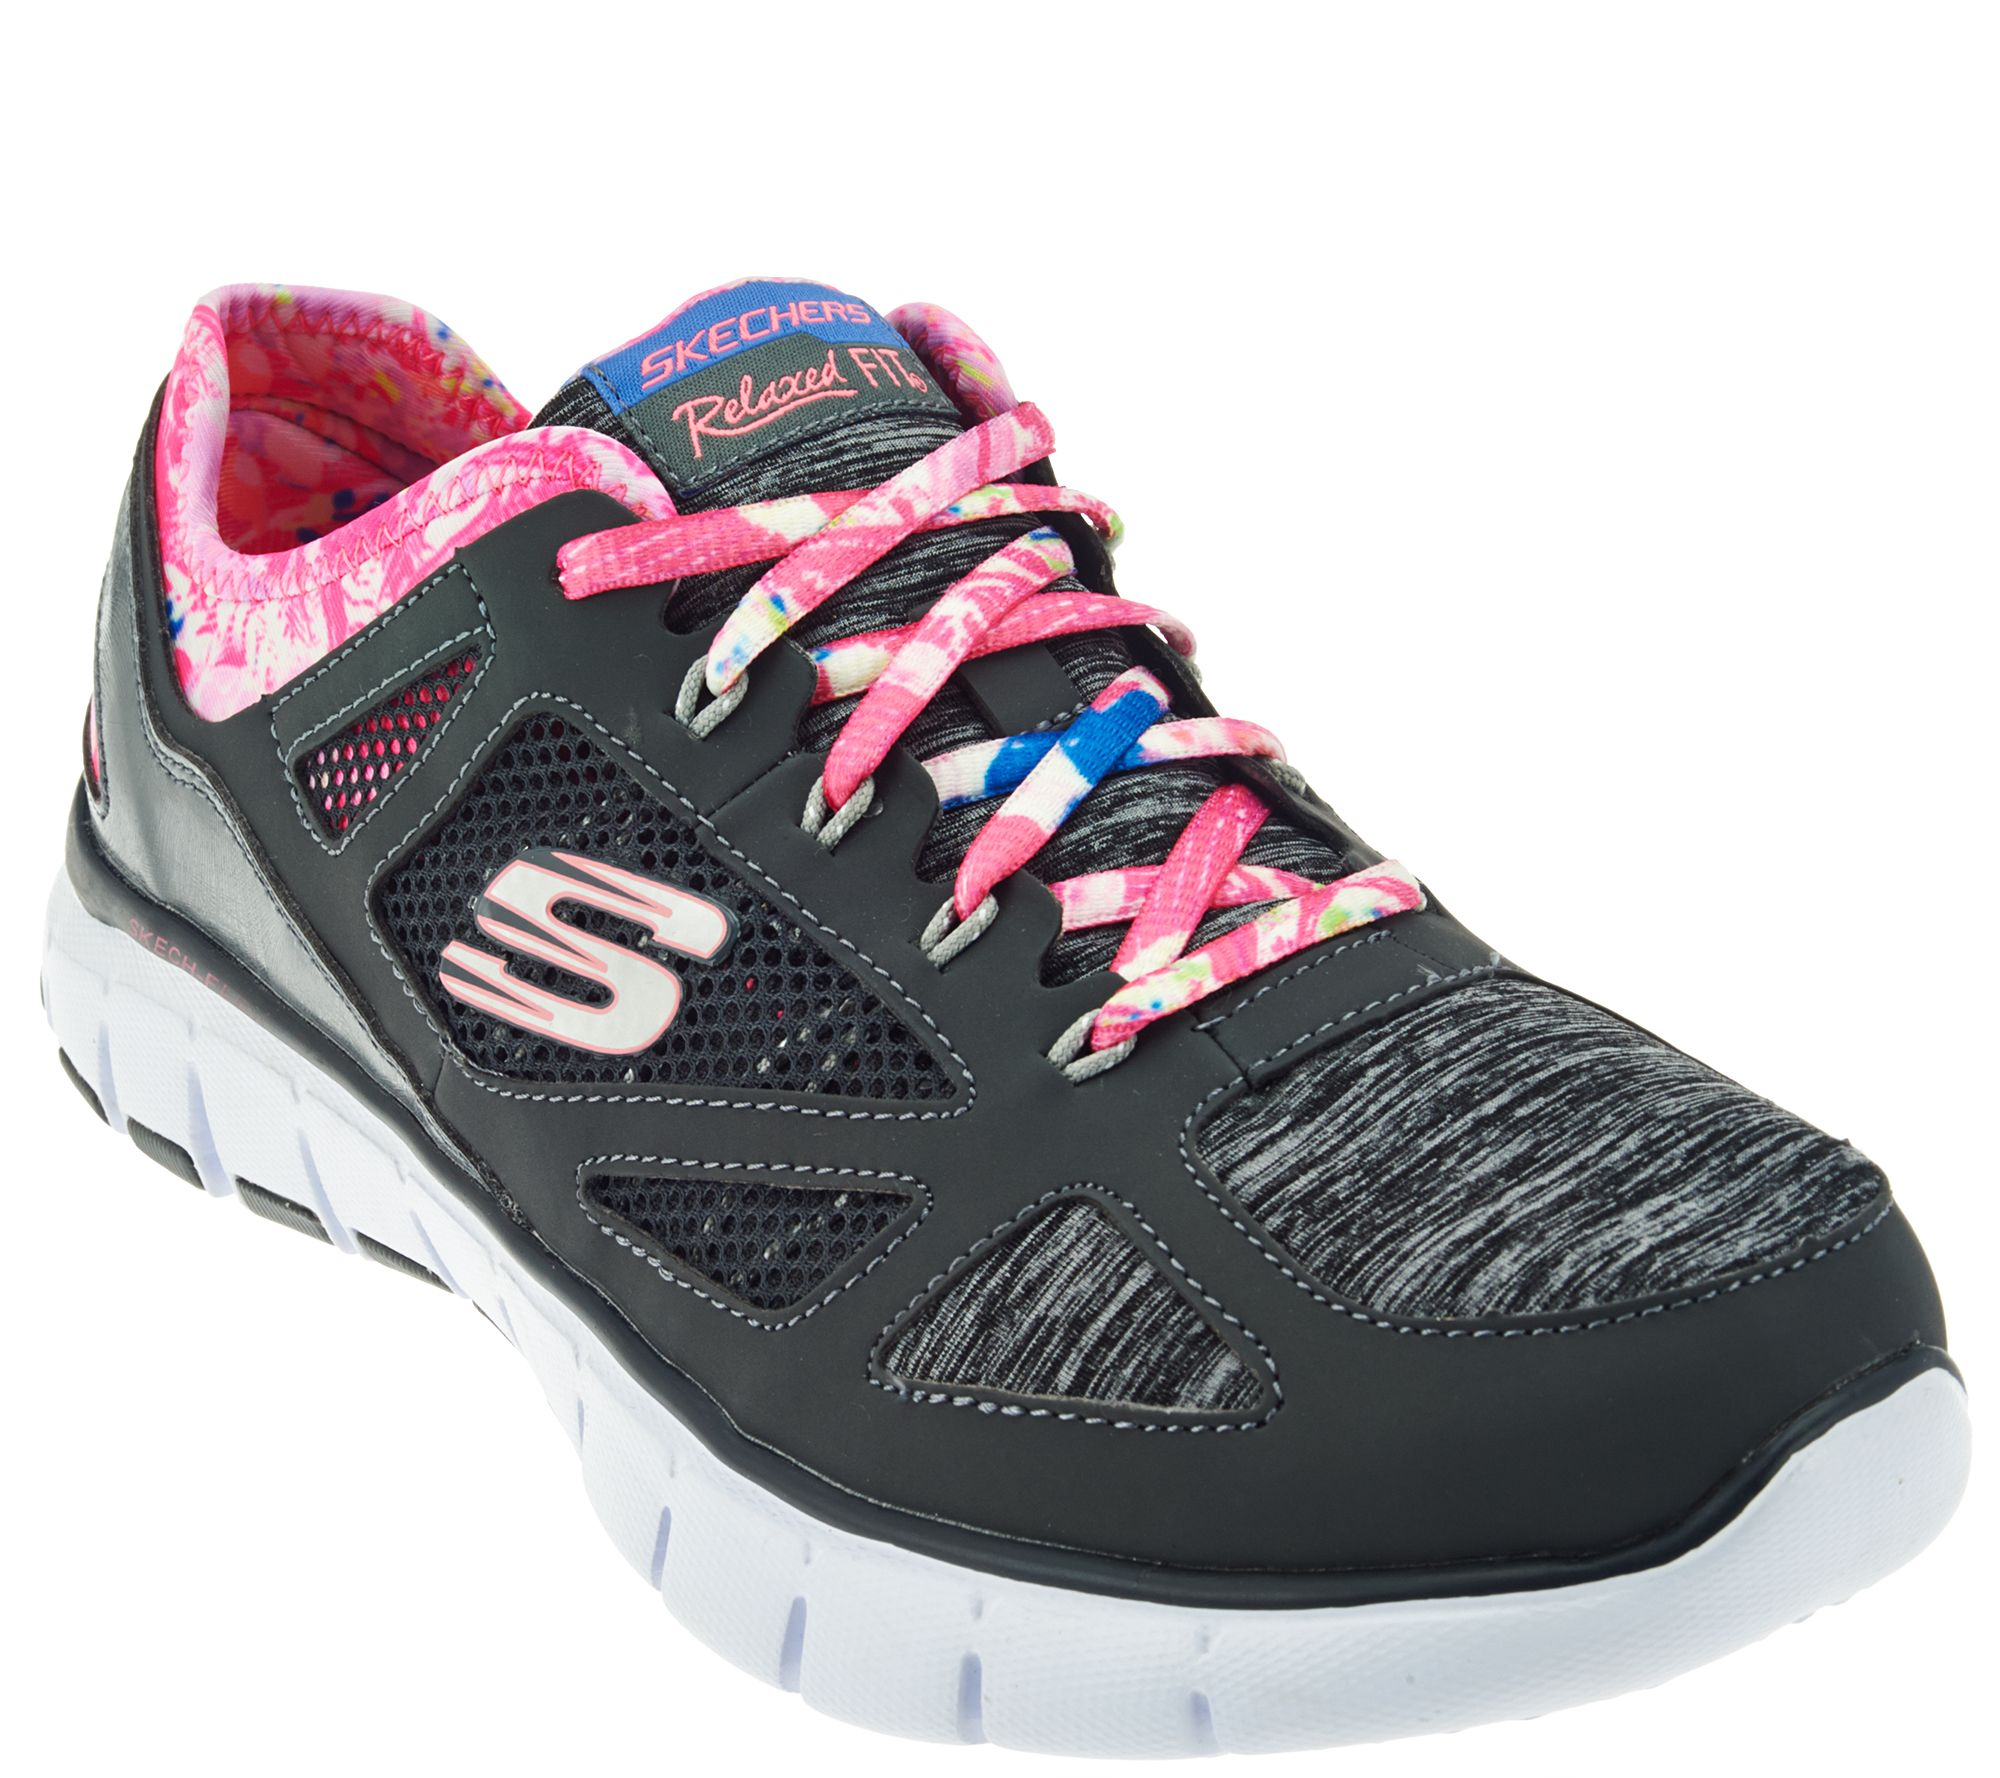 Skechers Relaxed Fit Lace-up Sneakers - Tropical Vibes